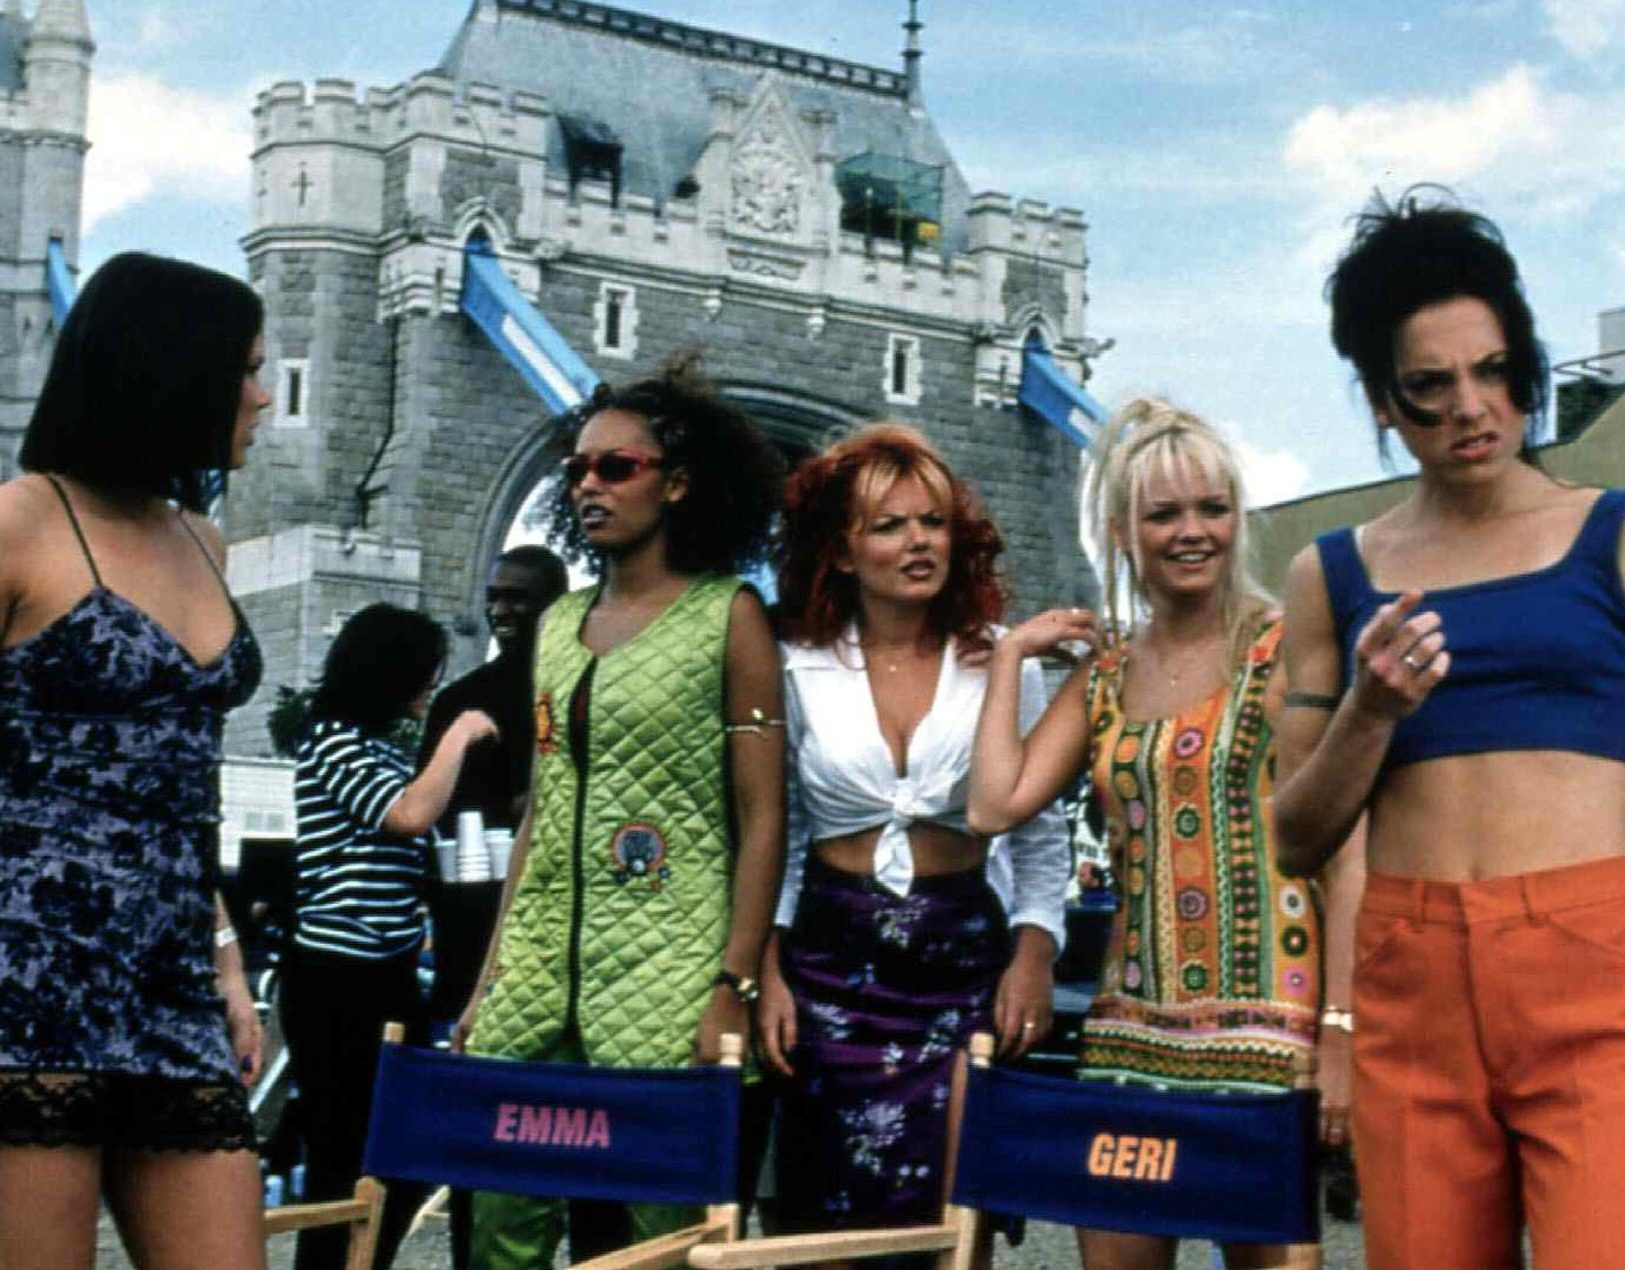 spiceworld 2000x1270 1 e1623851107887 Zig-A-Zig-Ah! It's 25 Fascinating Facts About The Spice Girls!